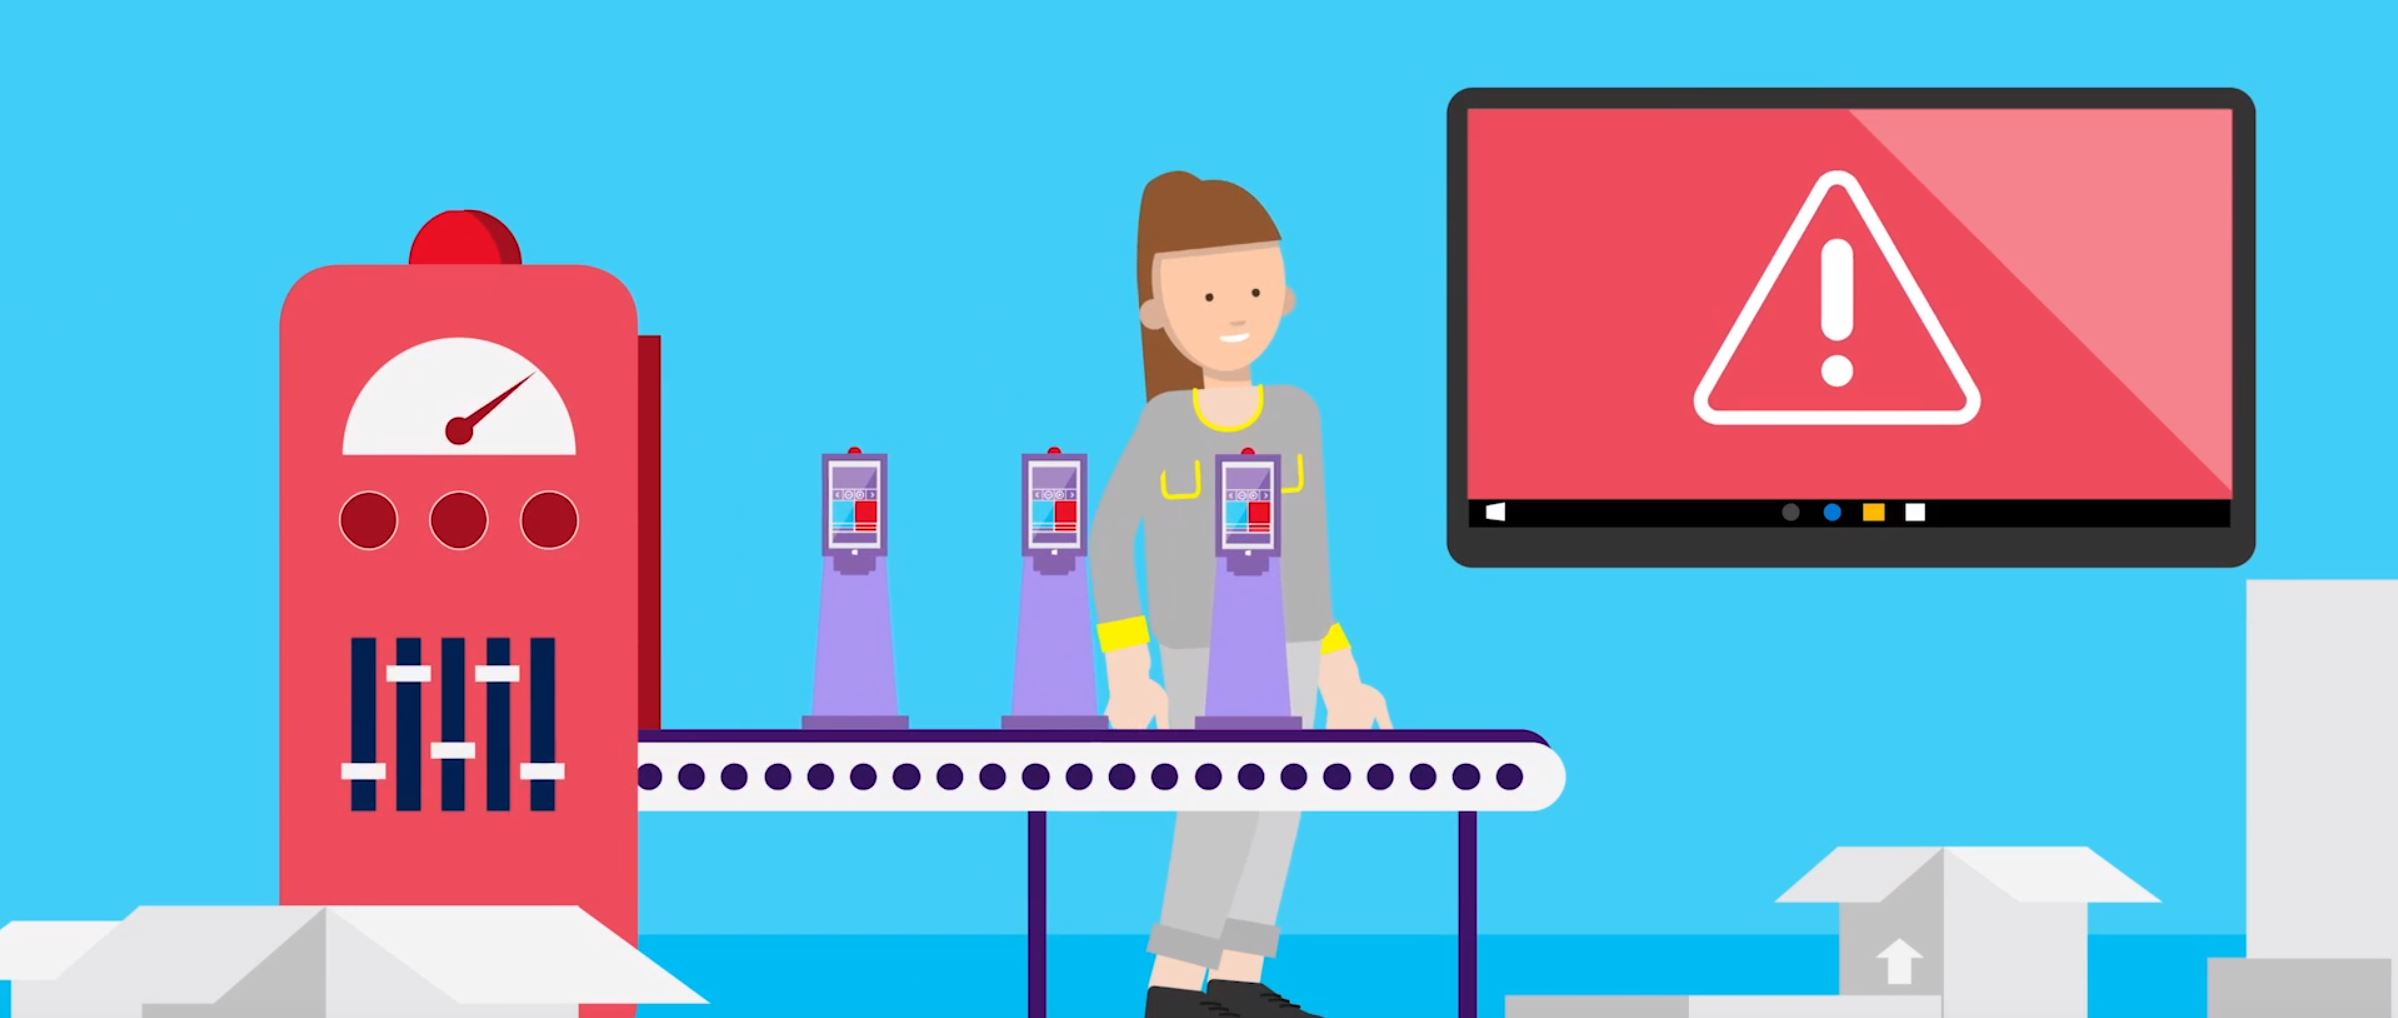 2D character animation image 7 for Microsoft Innovation - manufacturing project